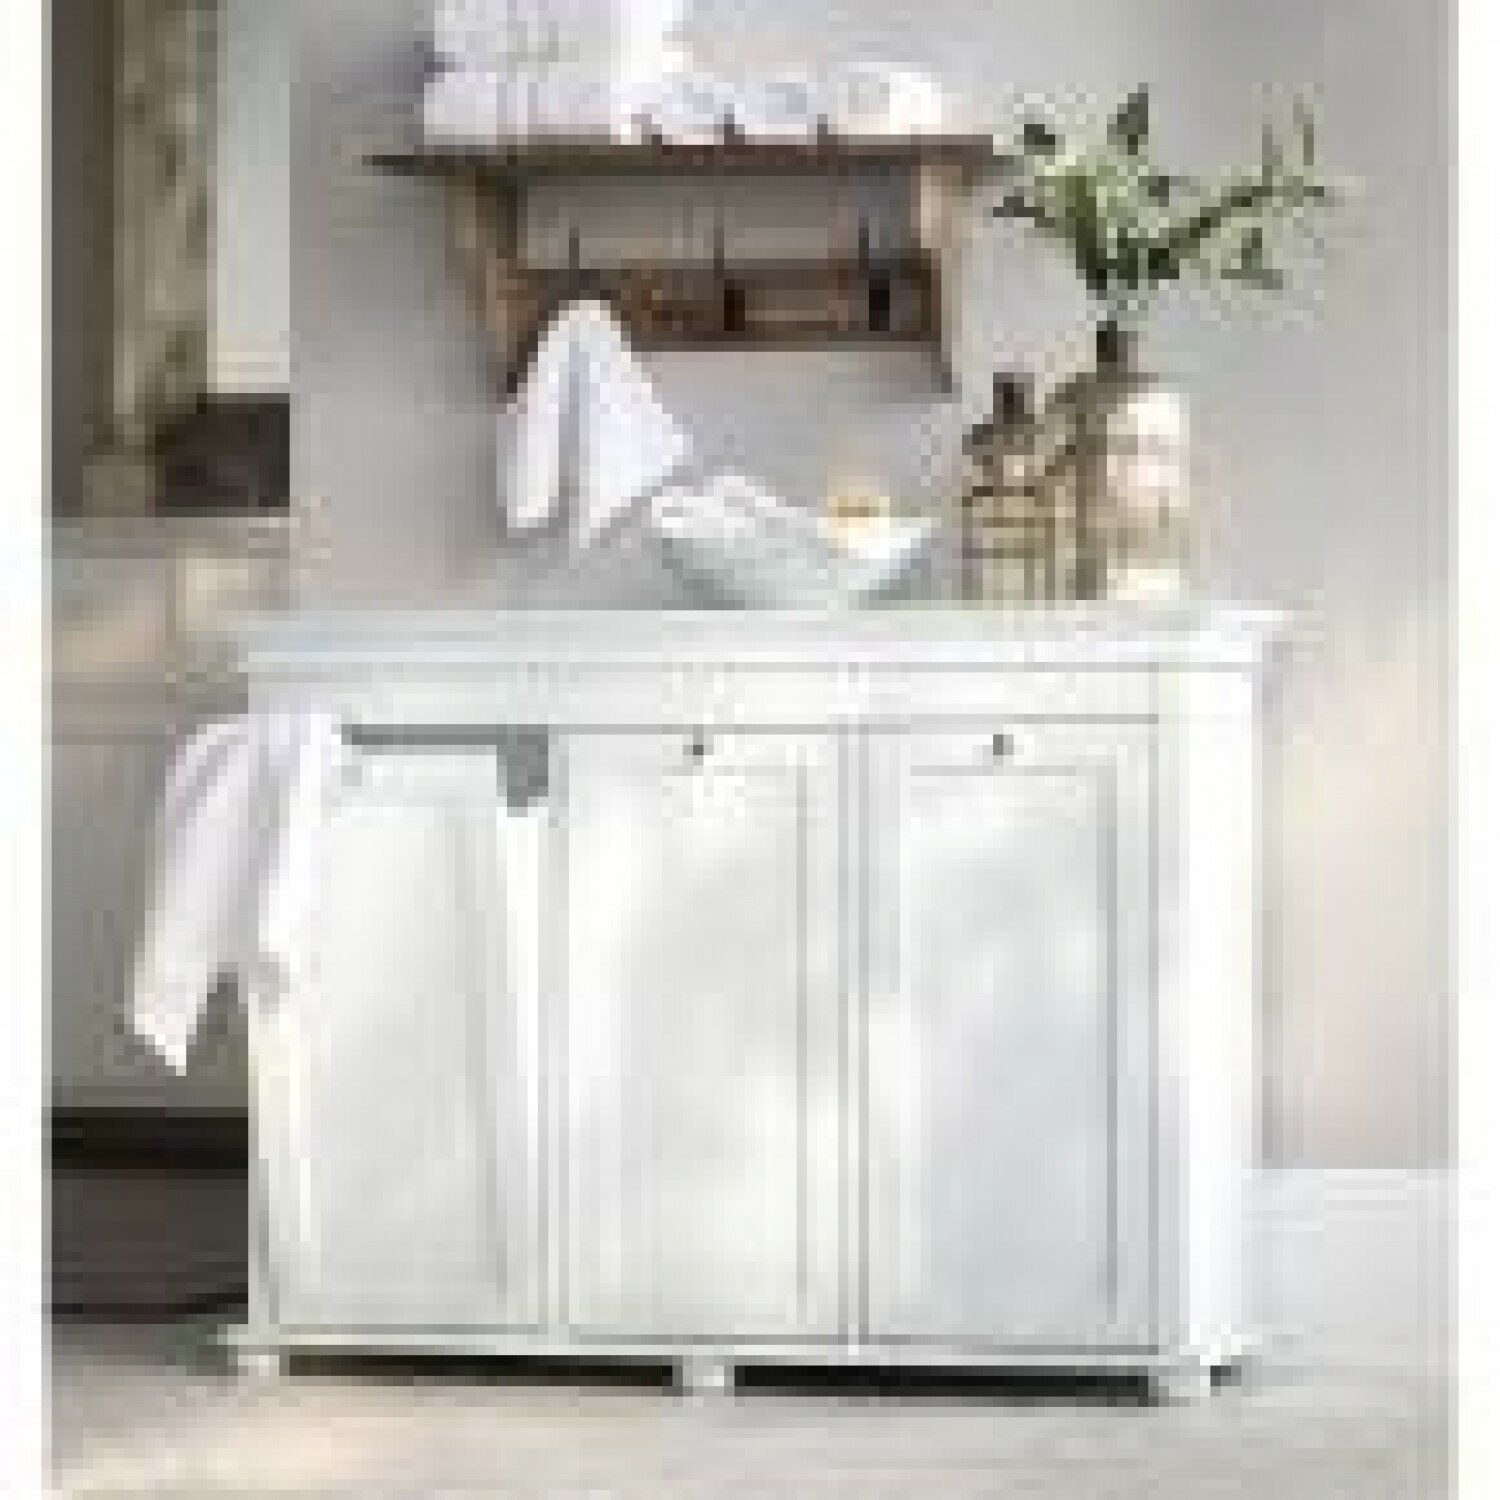 3 Compartment Tilt Out Laundry Hamper White Cabinet Liners Recycling Bin Basket Ebay Laundry Hamper White Cabinets Tilt Out Hamper